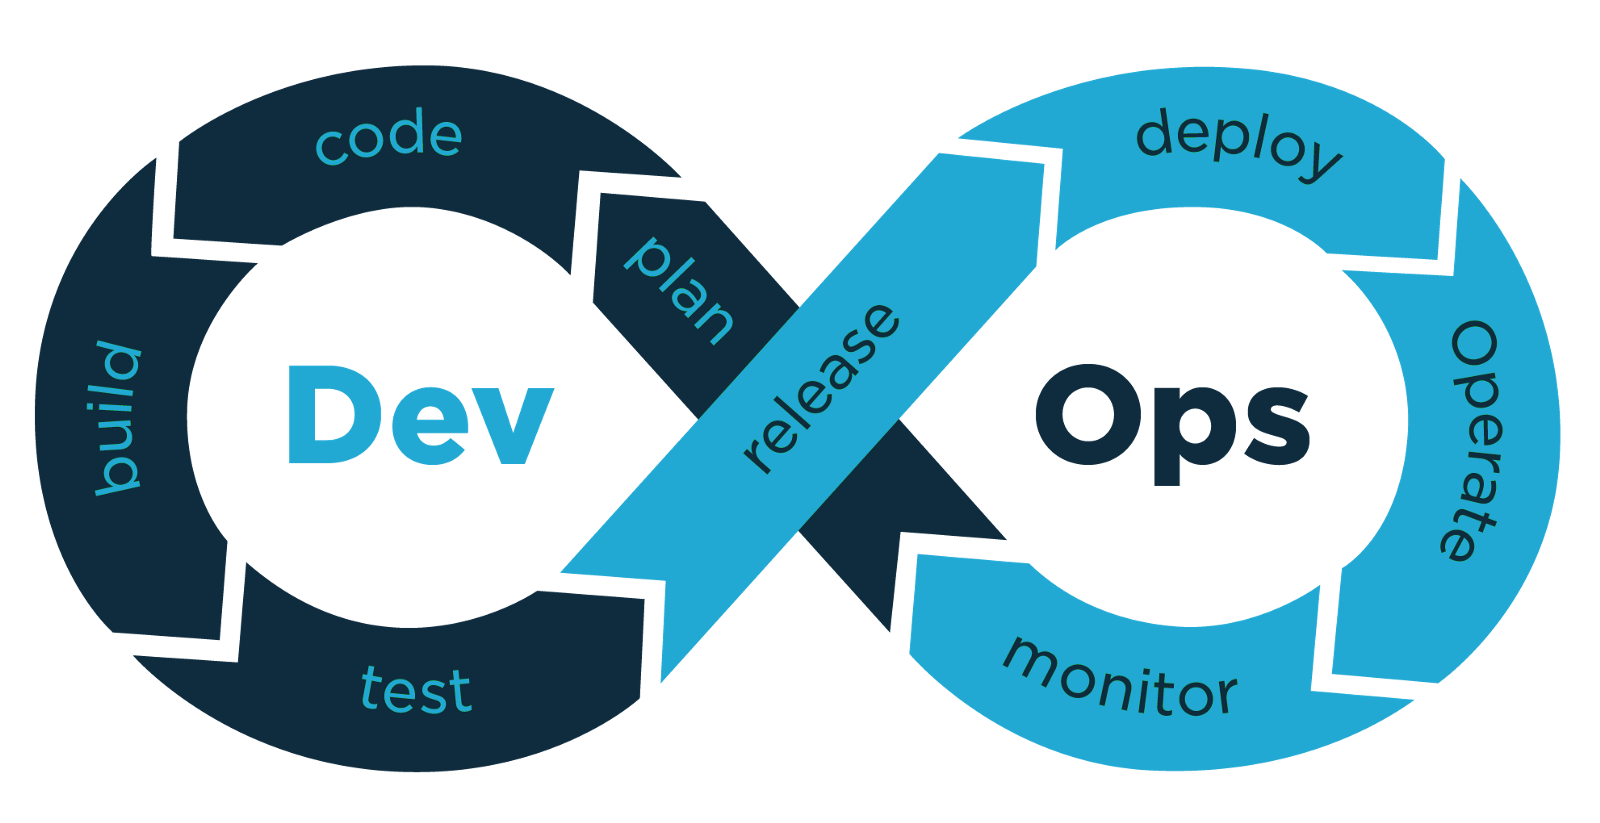 DevOps volgens SAP: keep the core clean